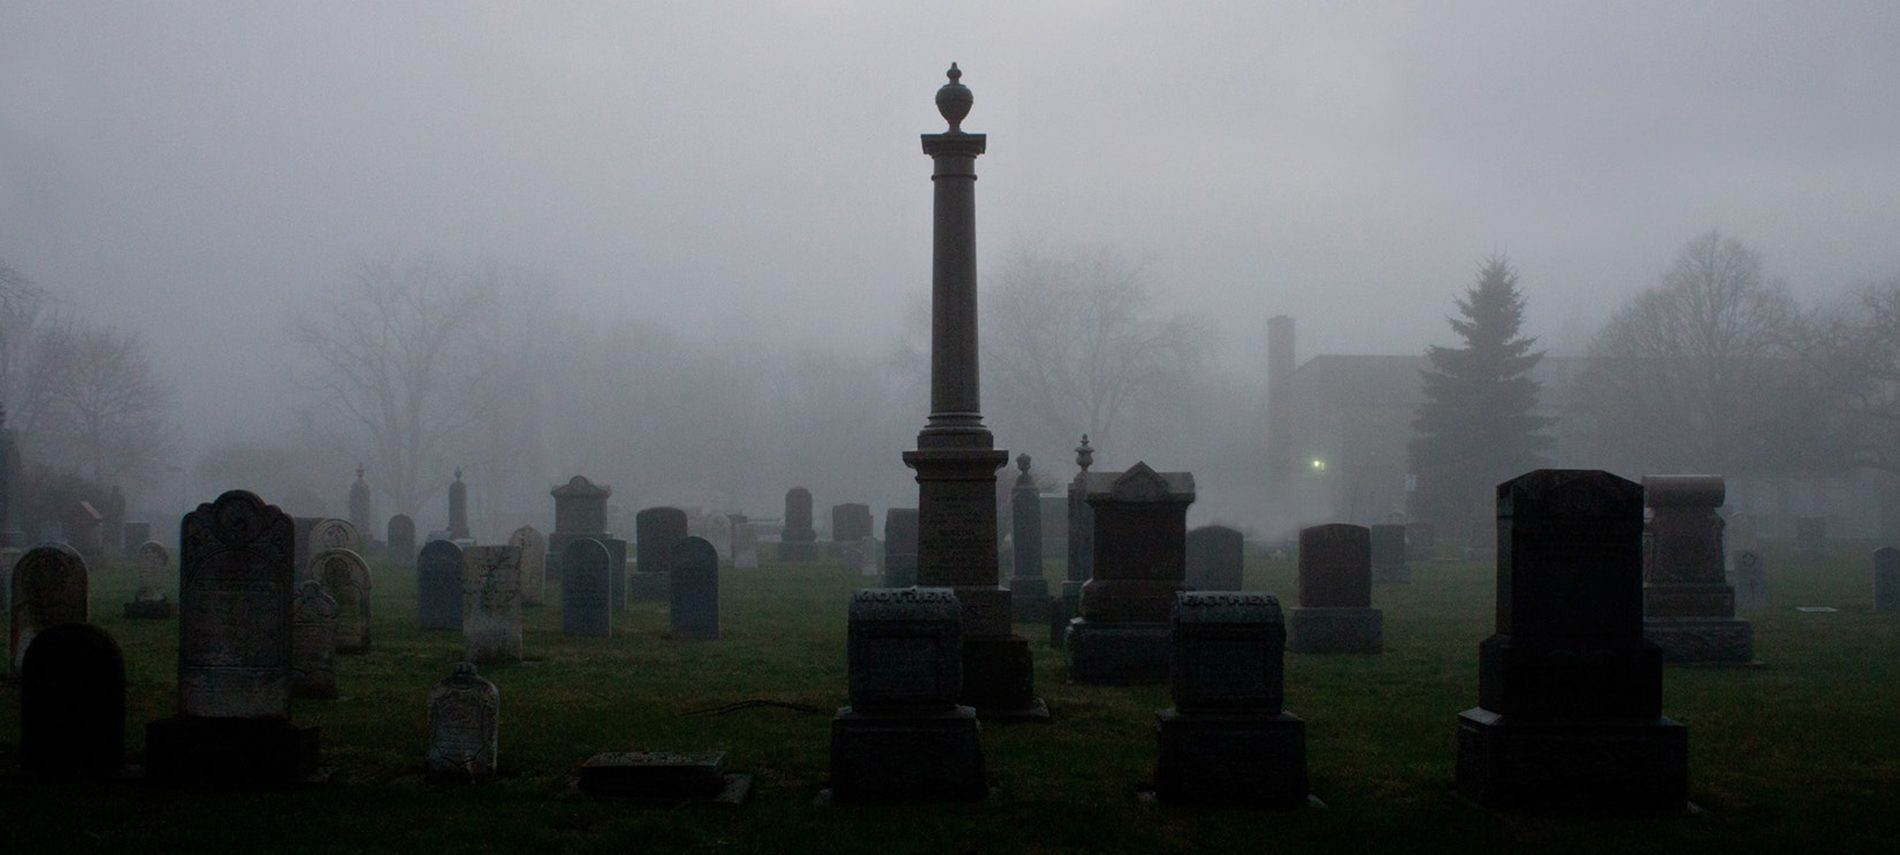 cemetery with many gravestones and a tall monument in dark foggy mist light in distant building